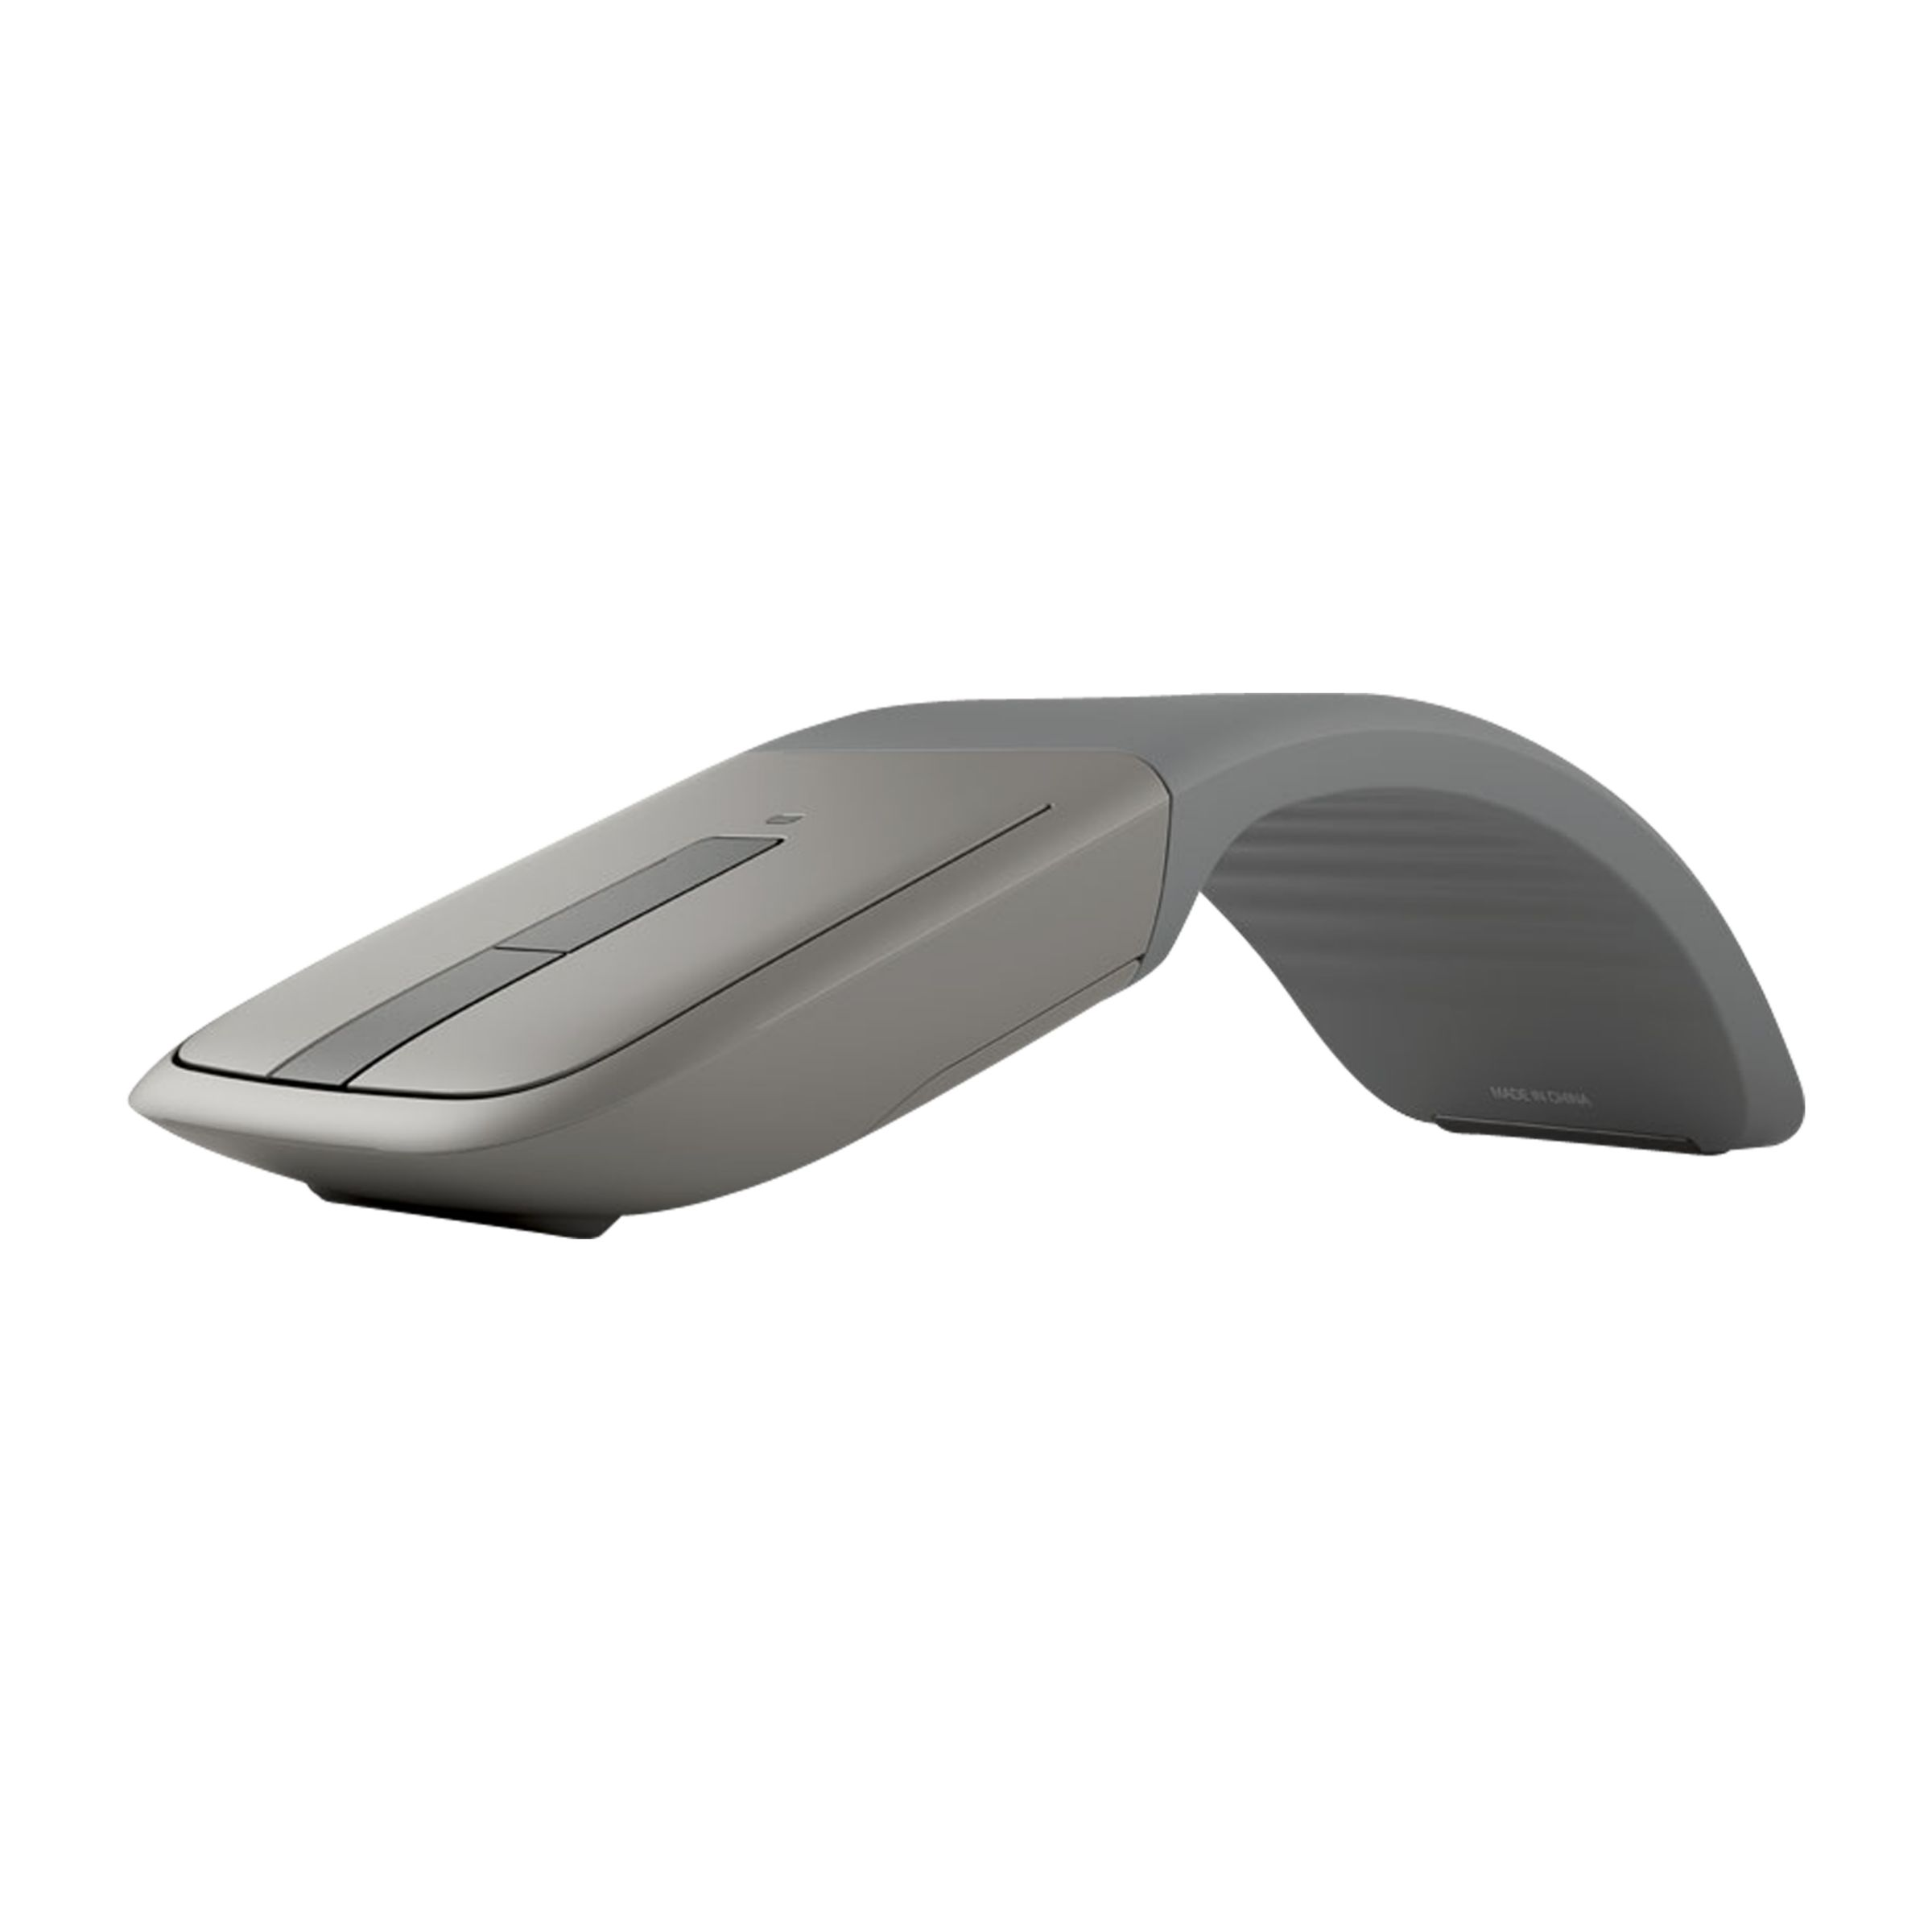 Microsoft Microsoft Arc Touch Bluetooth Mouse, Grey